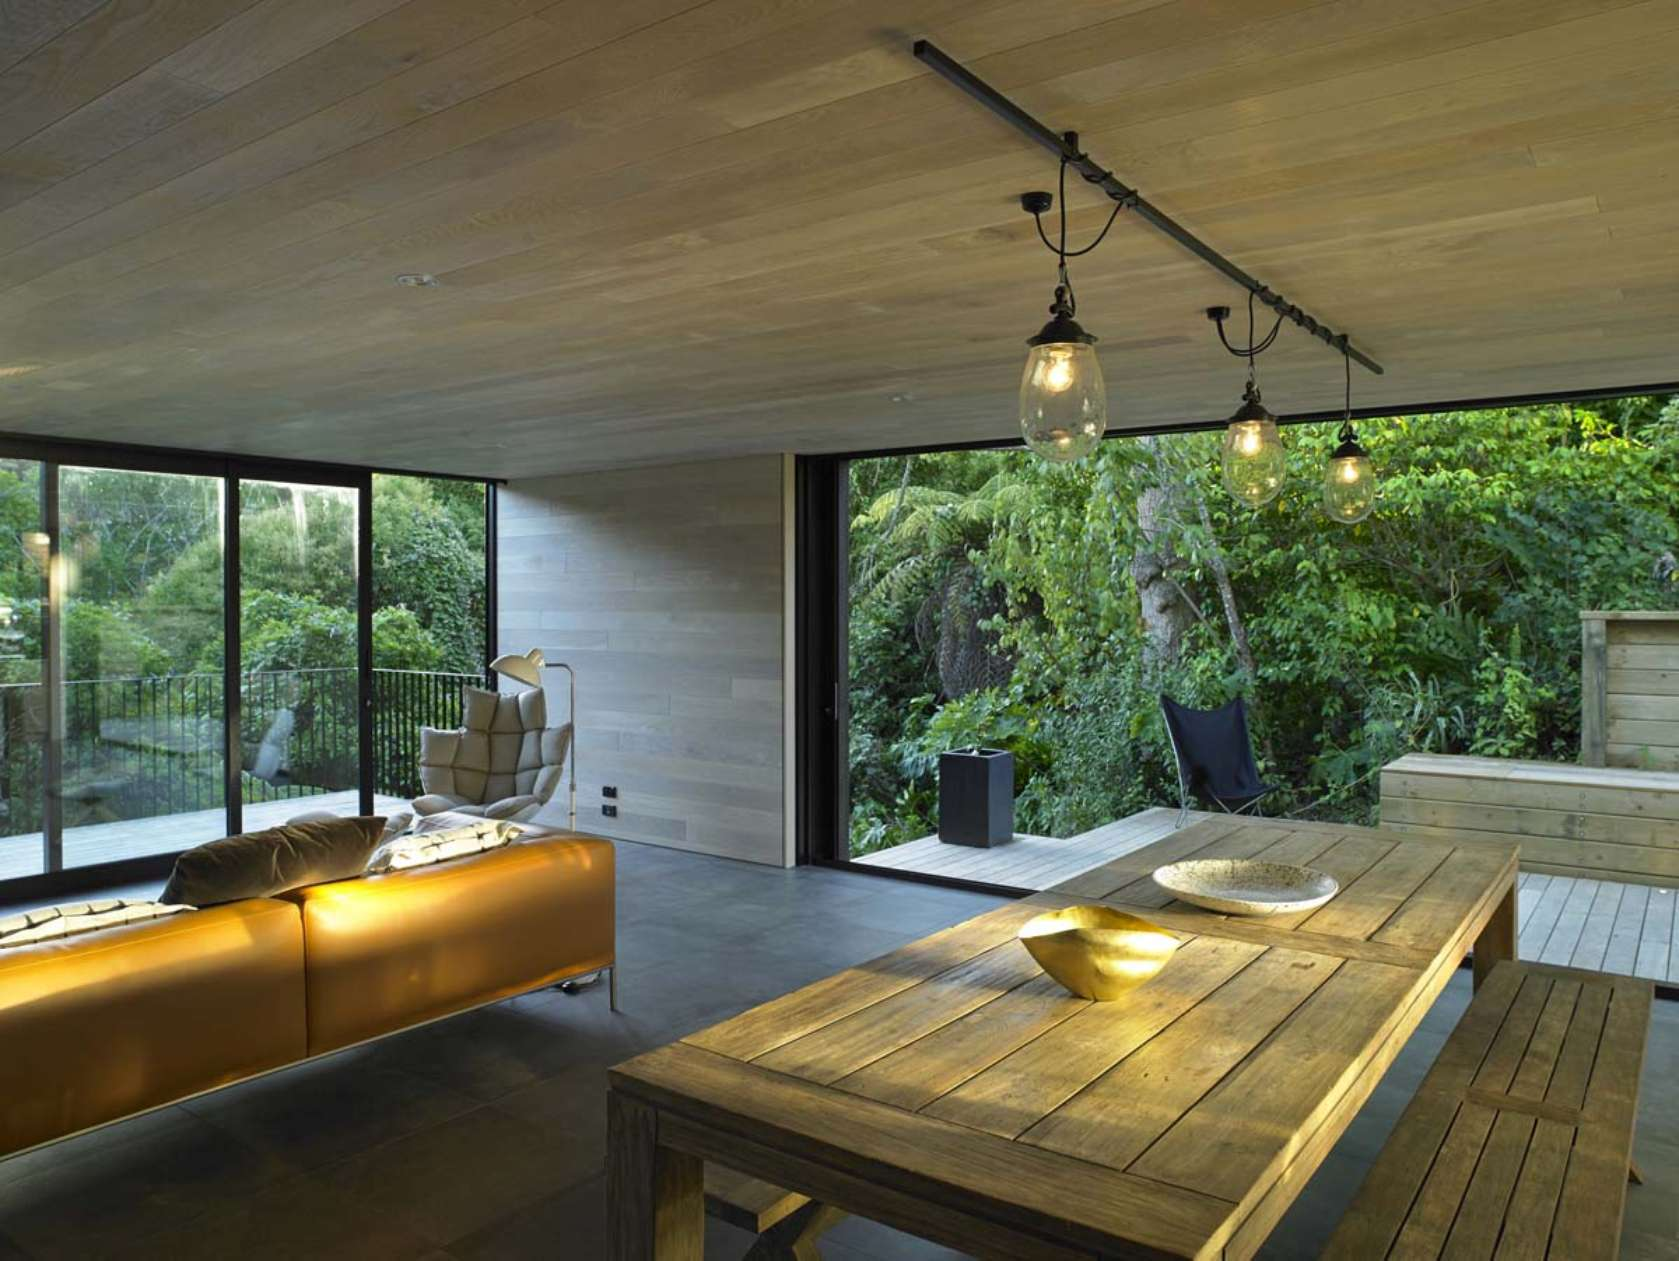 Waiatarua Houseby Monk Mackenzie Architects (via Lunchbox Architect)